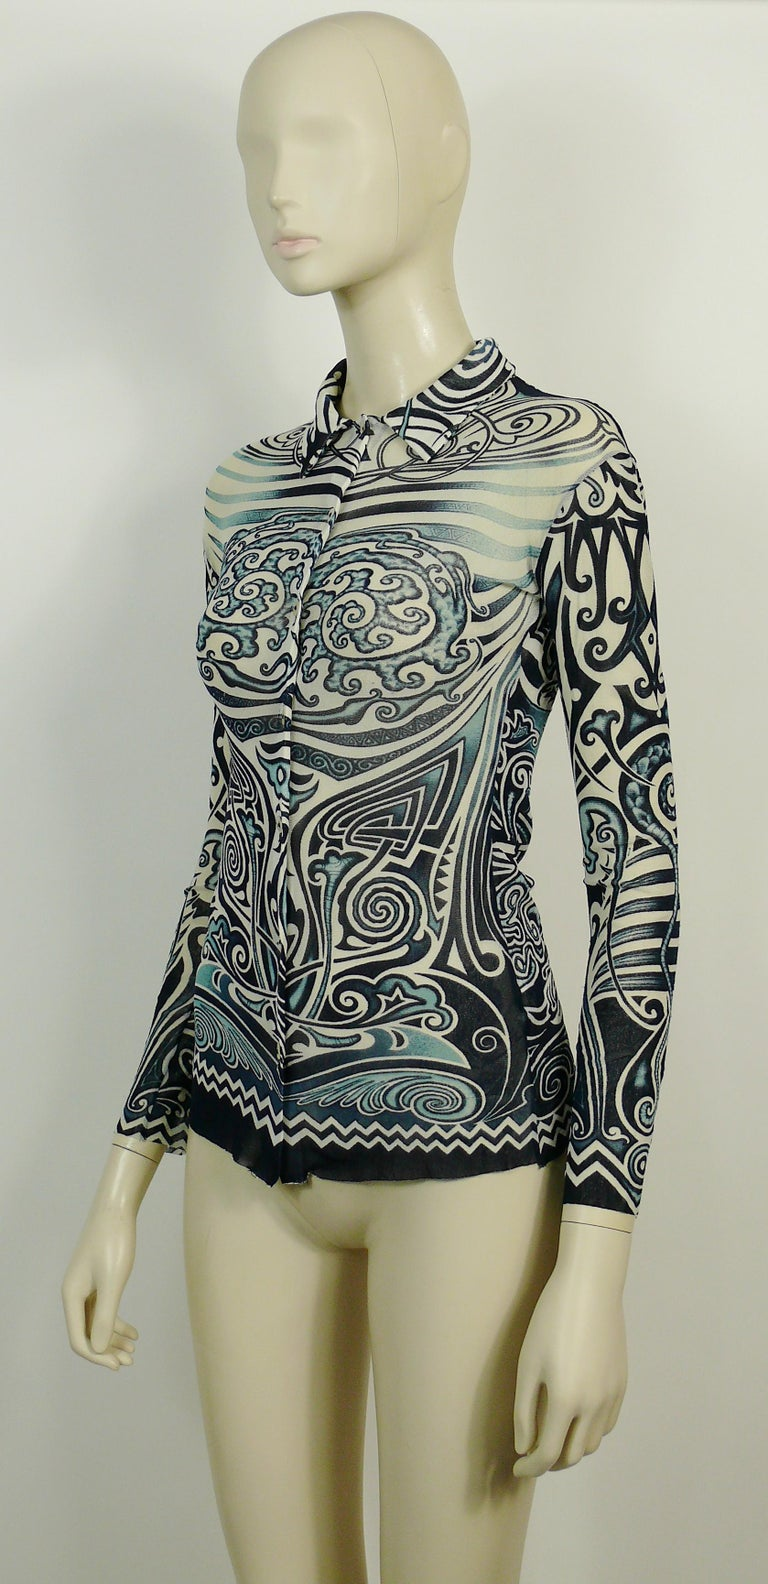 Women's or Men's Jean Paul Gaultier Vintage Iconic Tribal Tattoo Mesh Shirt Size S For Sale